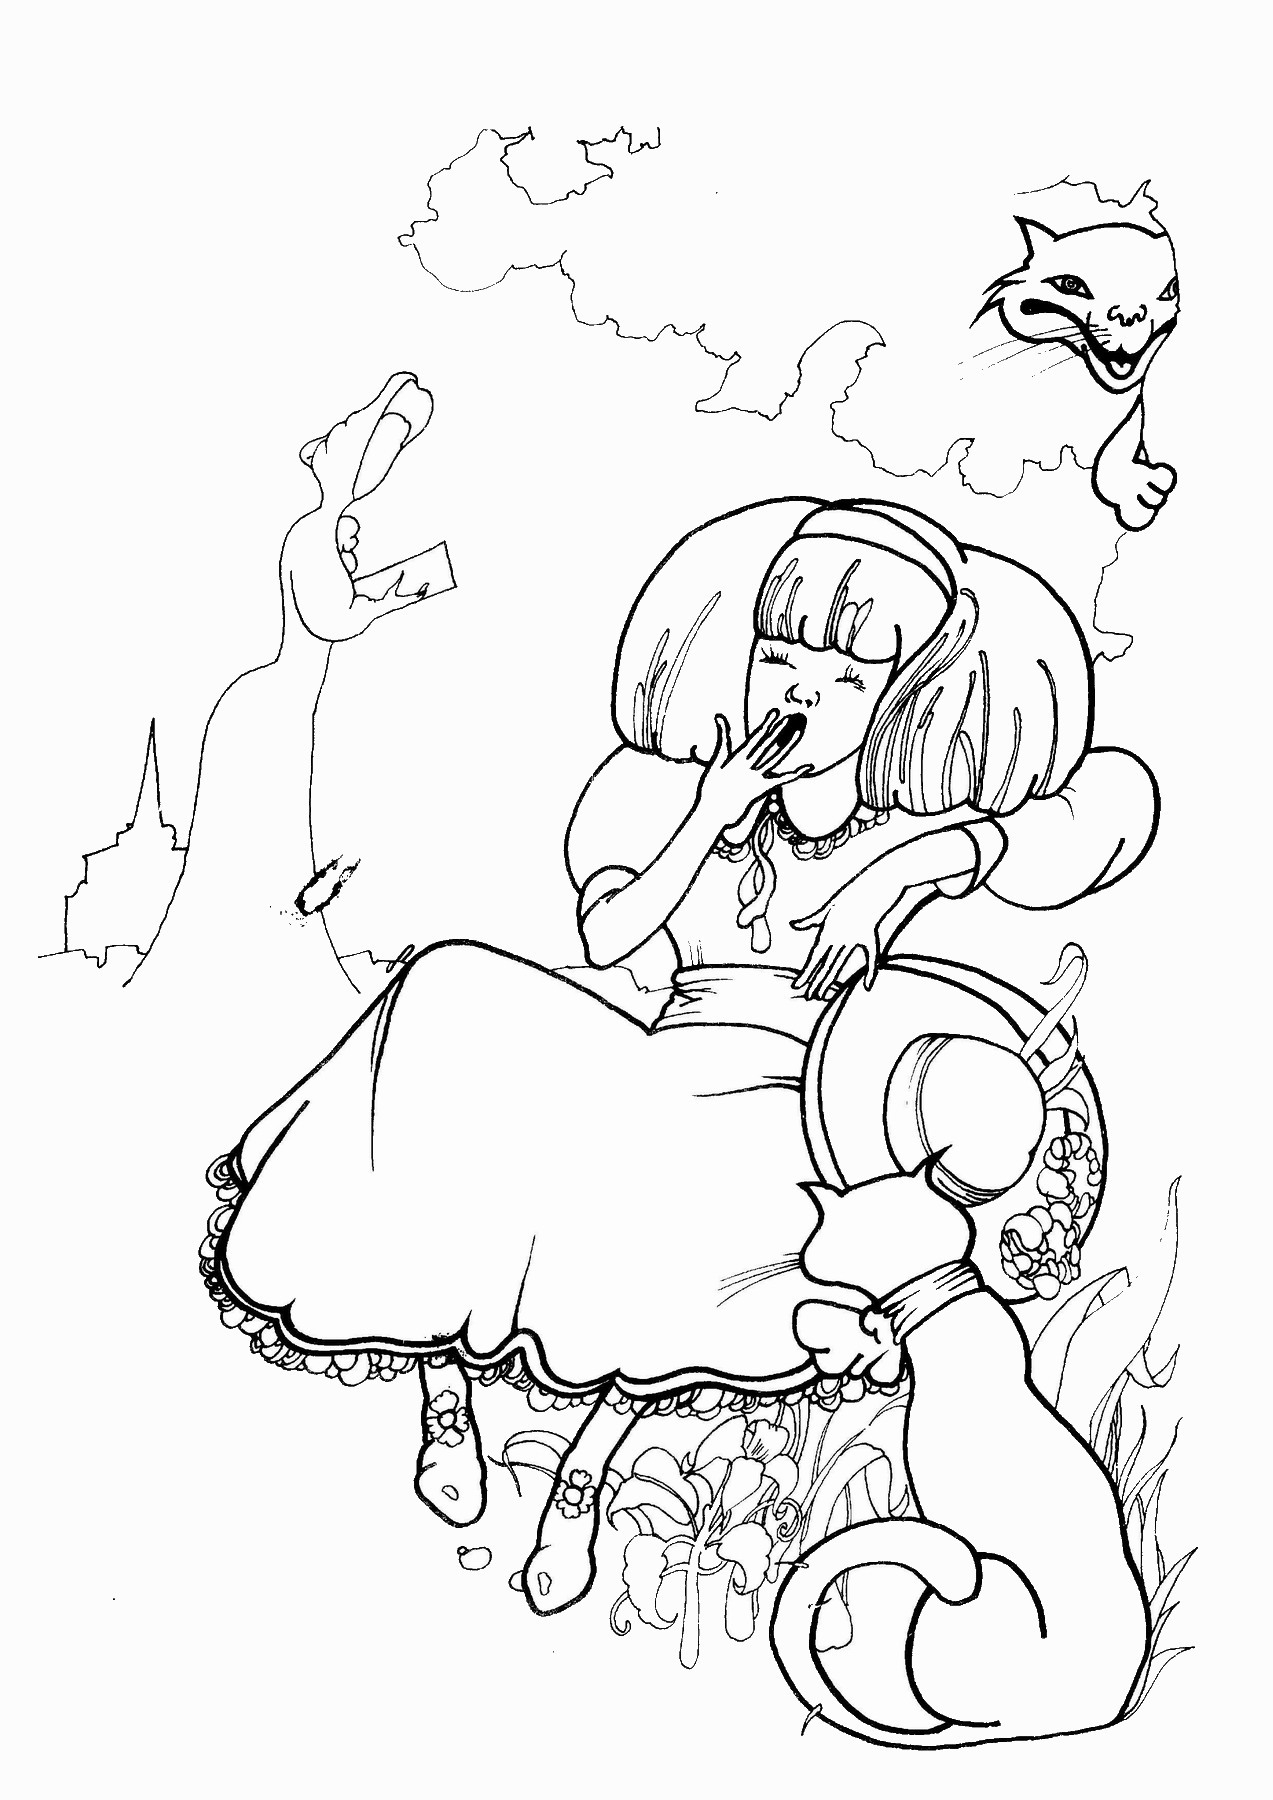 alice and wonderland coloring pages alice in wonderland coloring pages pages and wonderland coloring alice